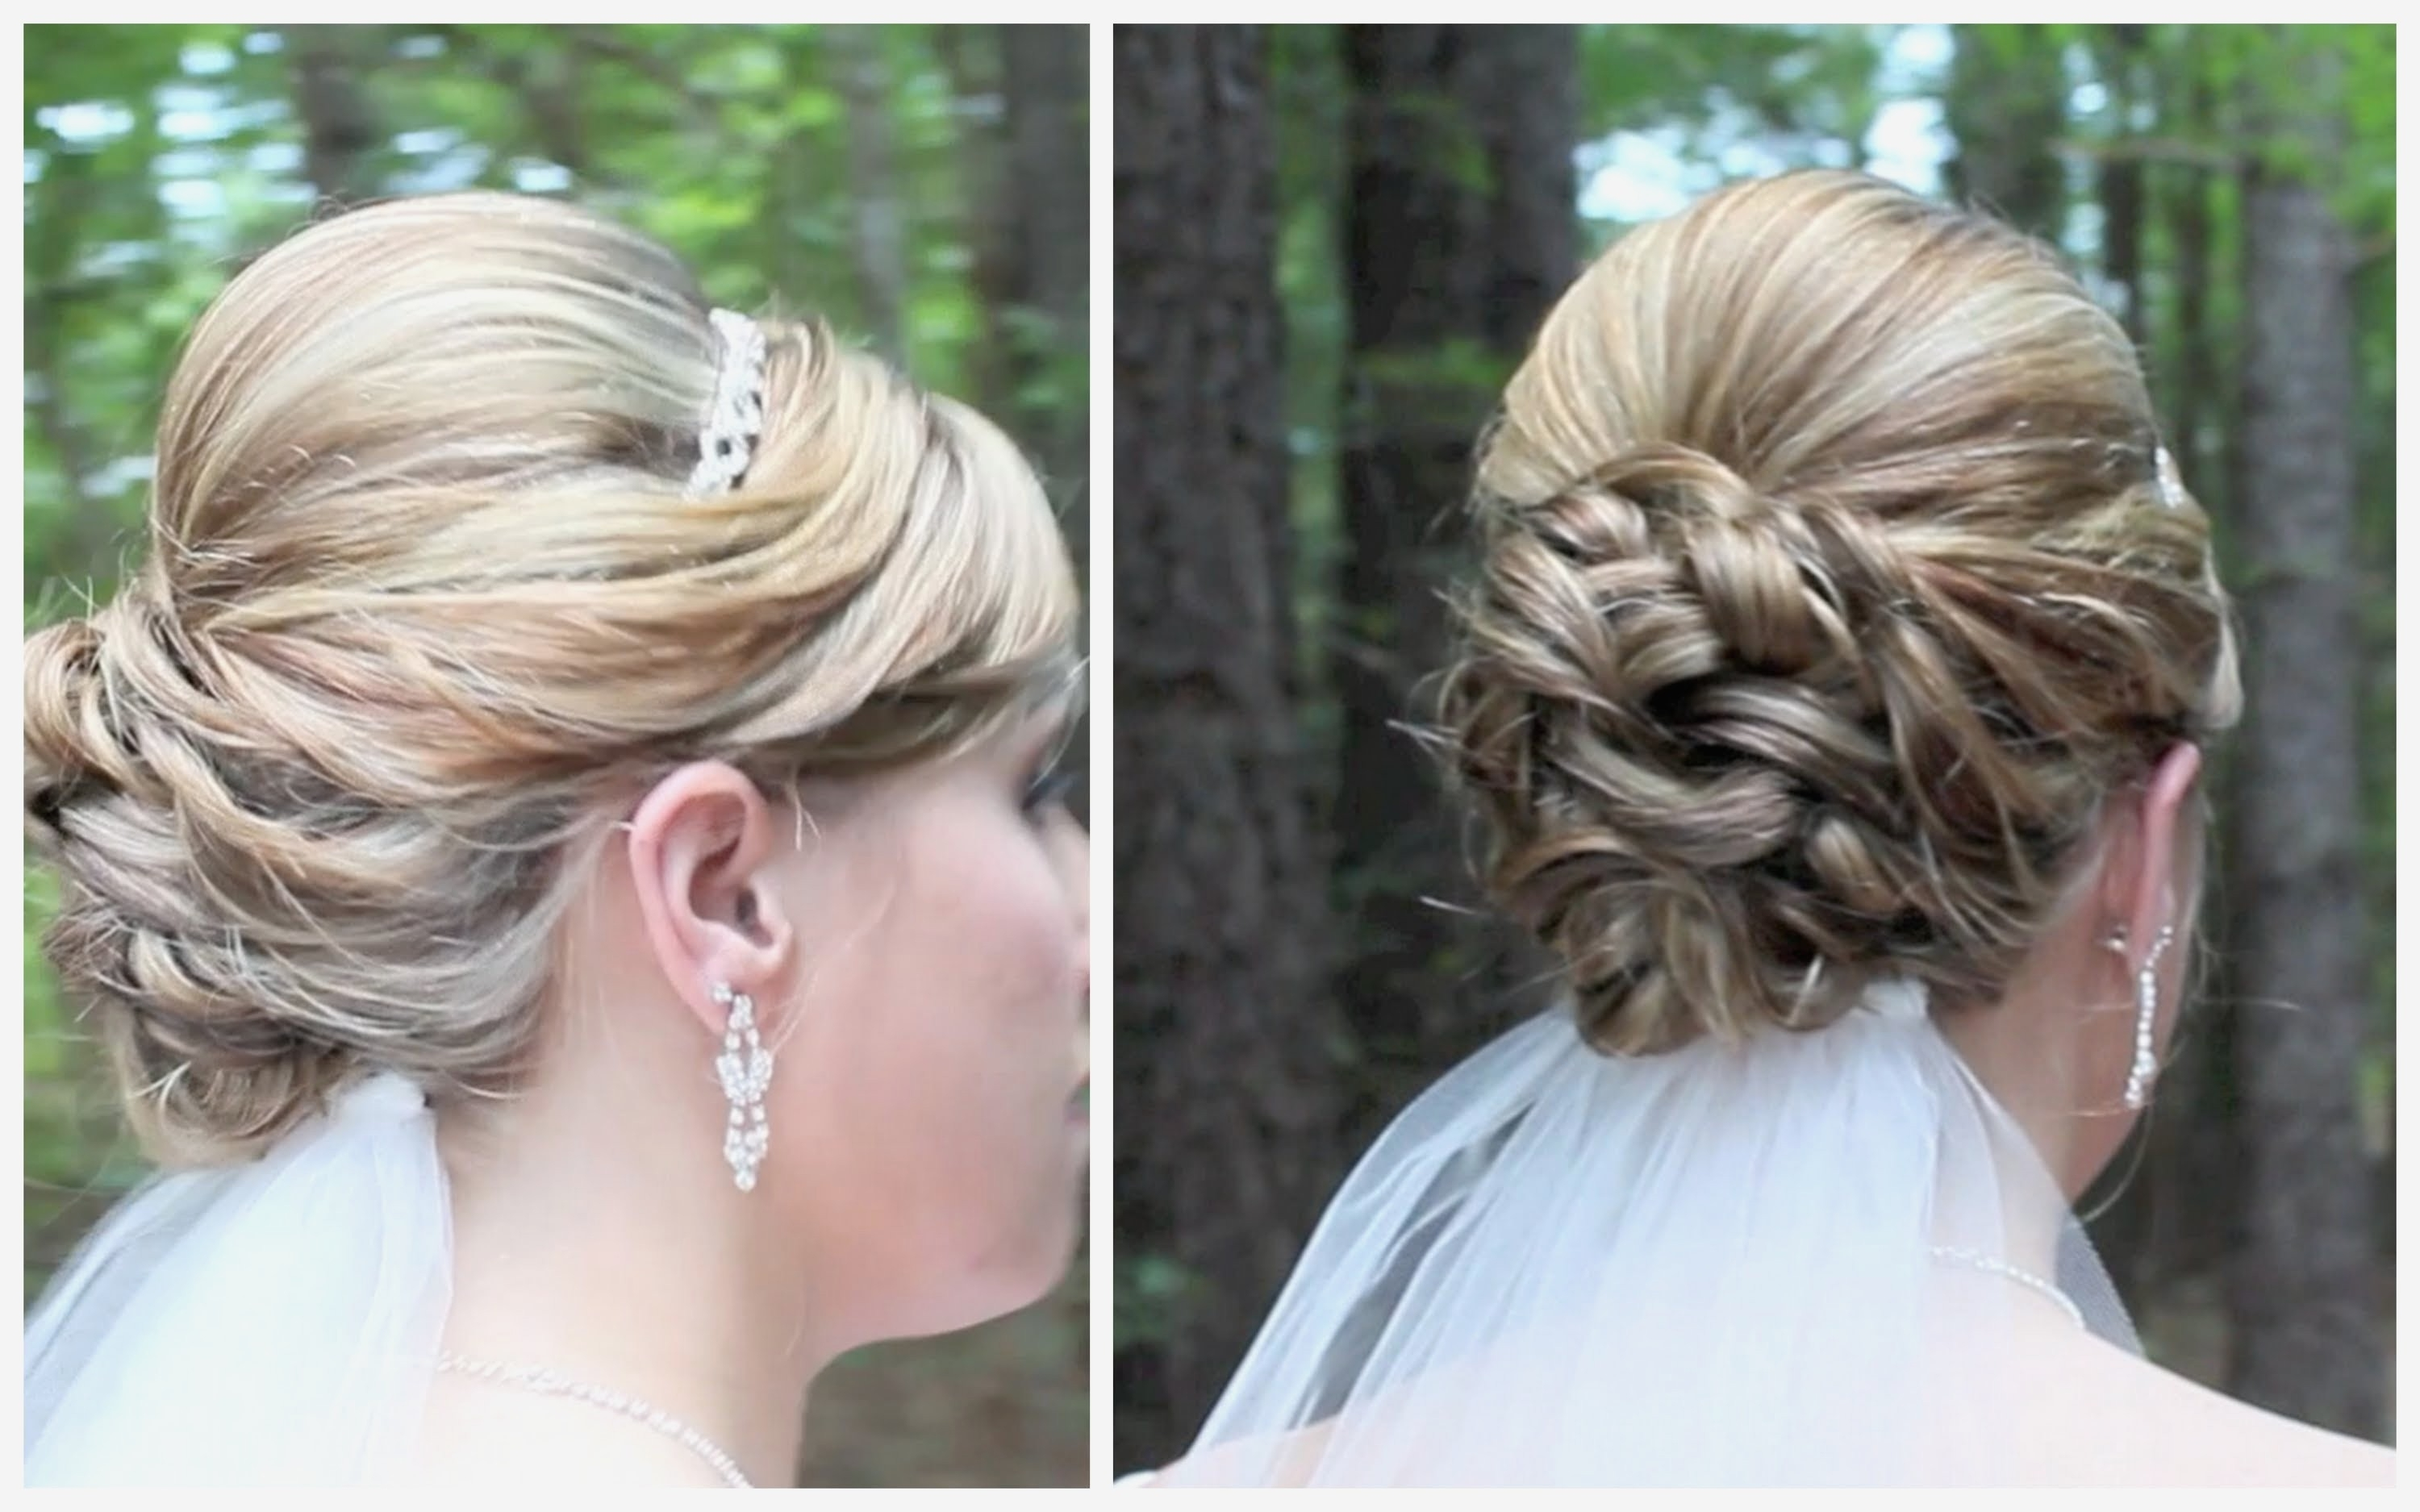 15 Best Ideas Of Tied Up Wedding Hairstyles